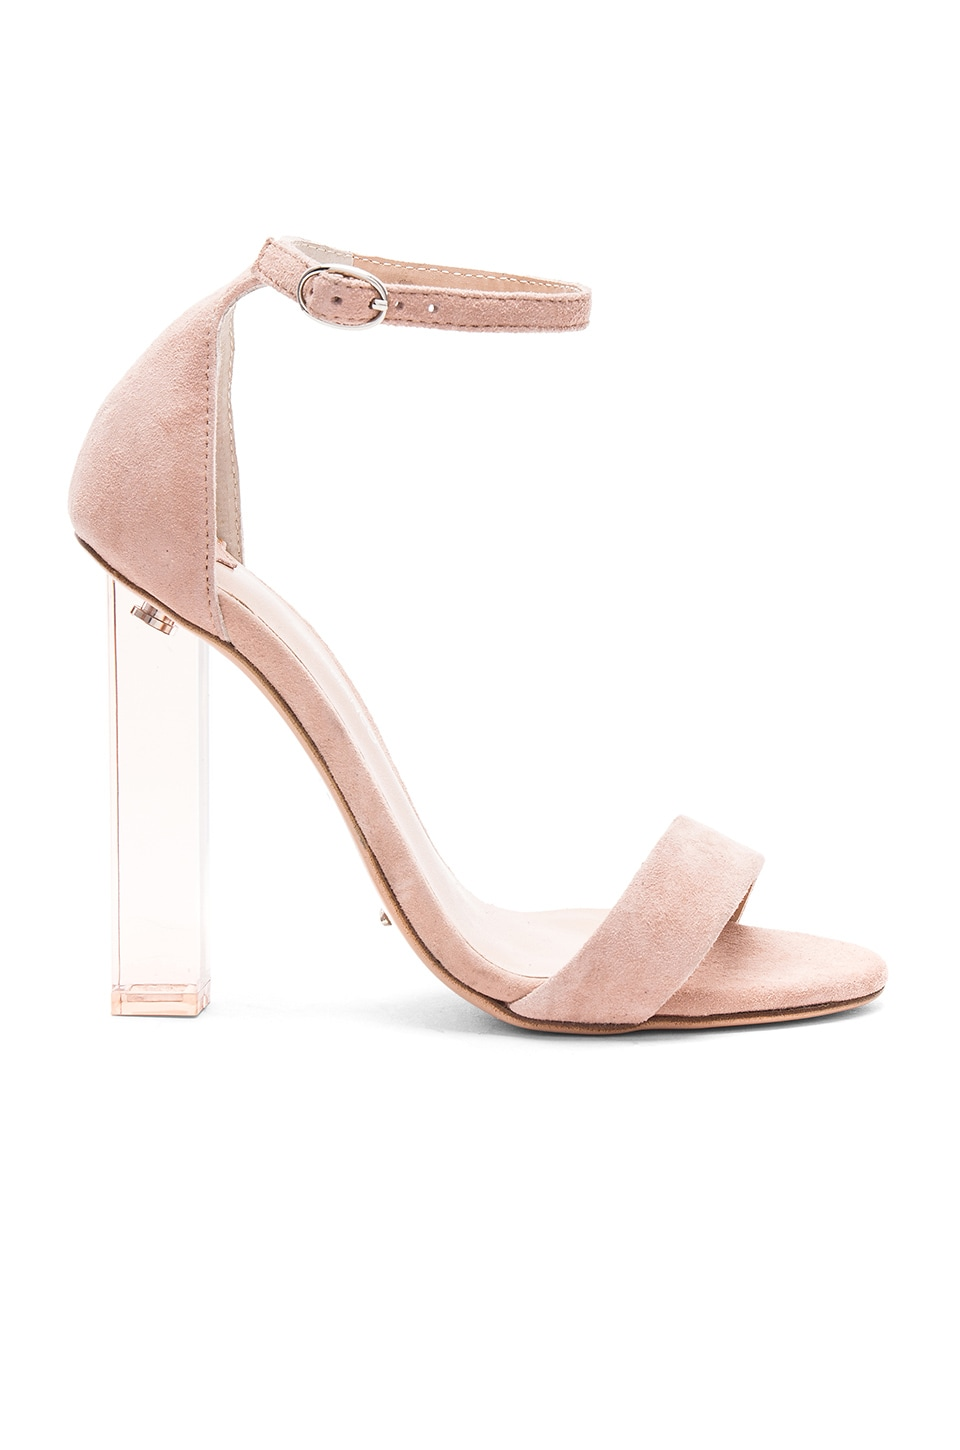 Tony Bianco Kashmir Heel in Blush Kid Suede